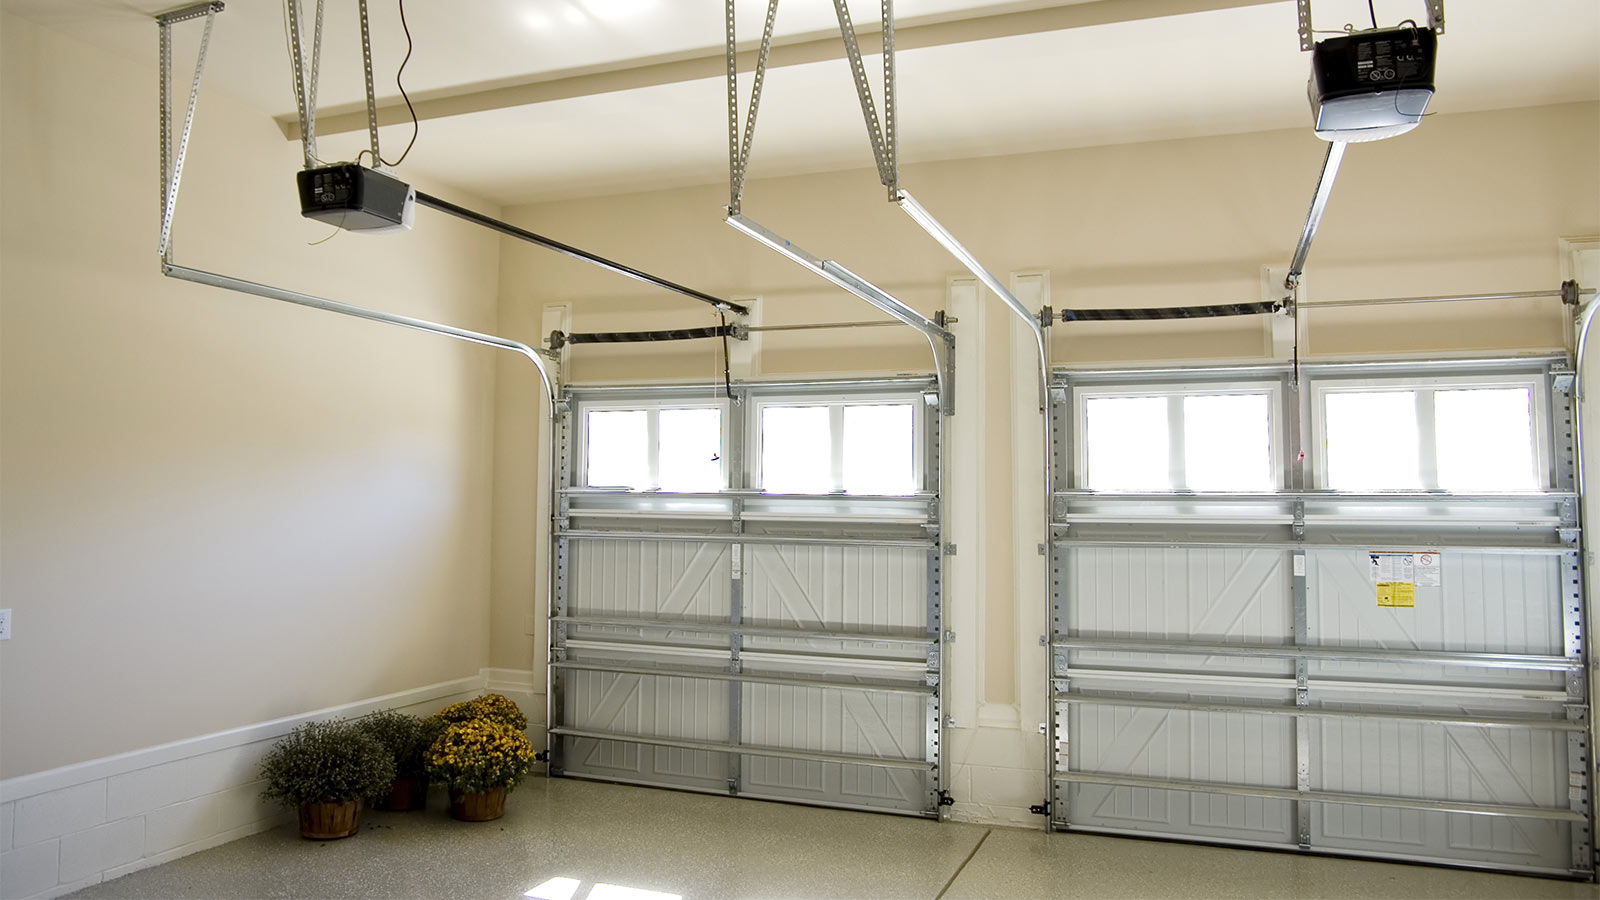 Sectional Garage Doors from Security Gates Romford suppliers.